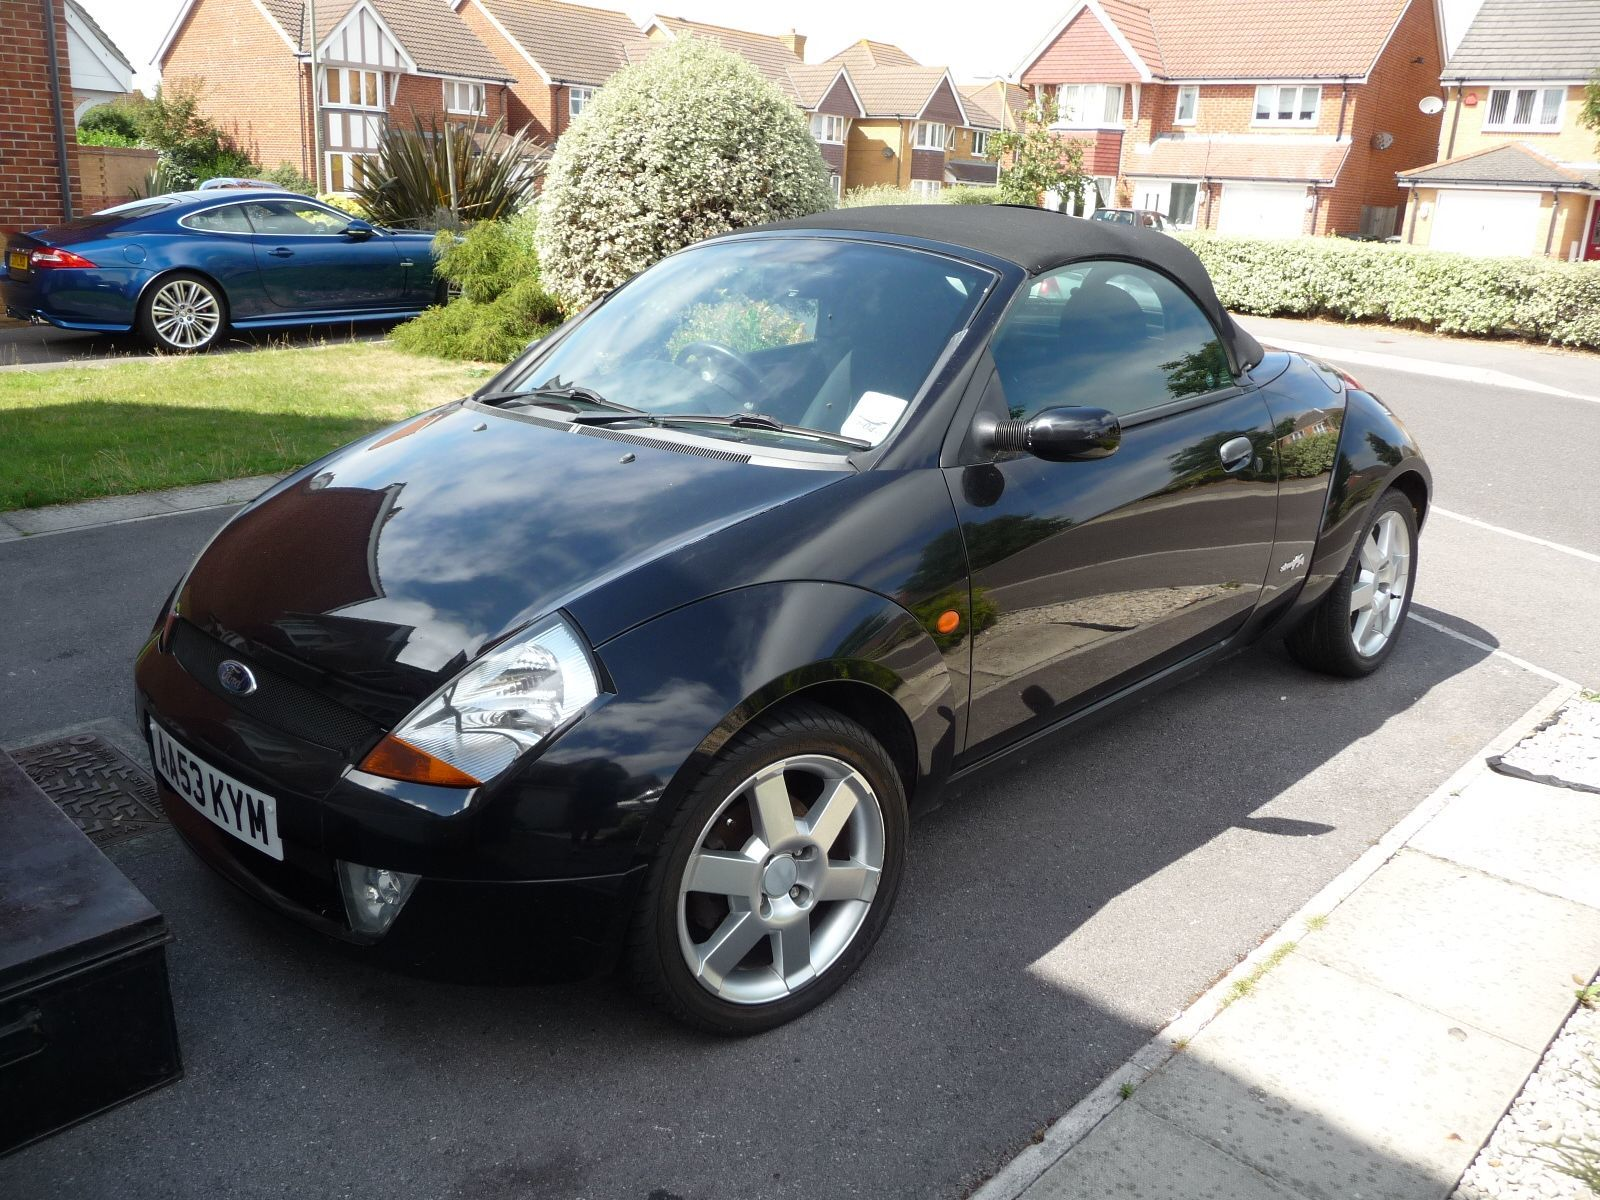 Ford Streetka 1.6 8V CONVERTIBLE PETROL BLACK